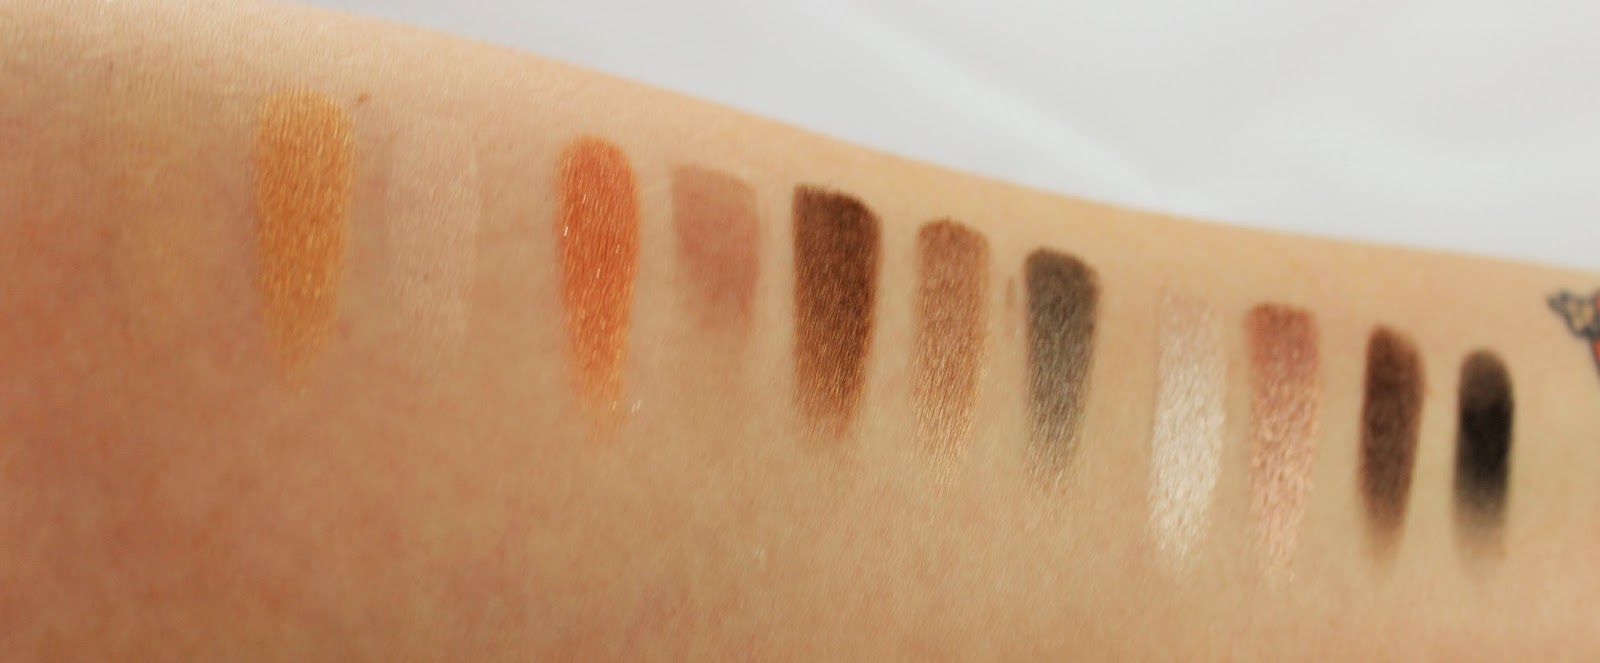 Naked 2 swatches